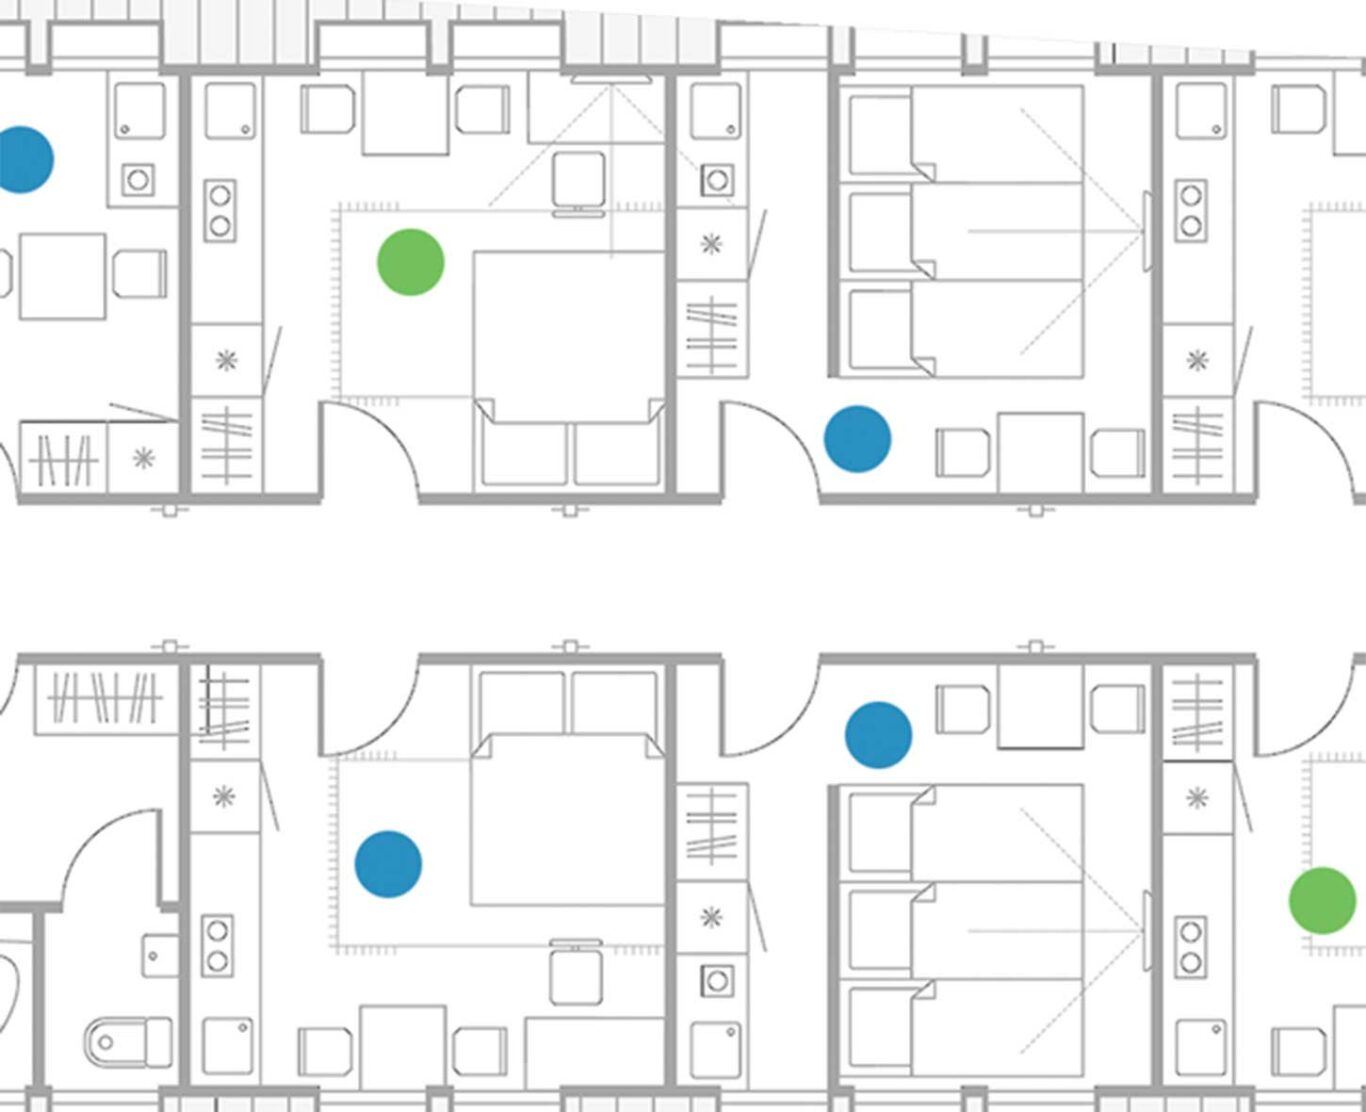 Hotel WiFi Network Layout and Design